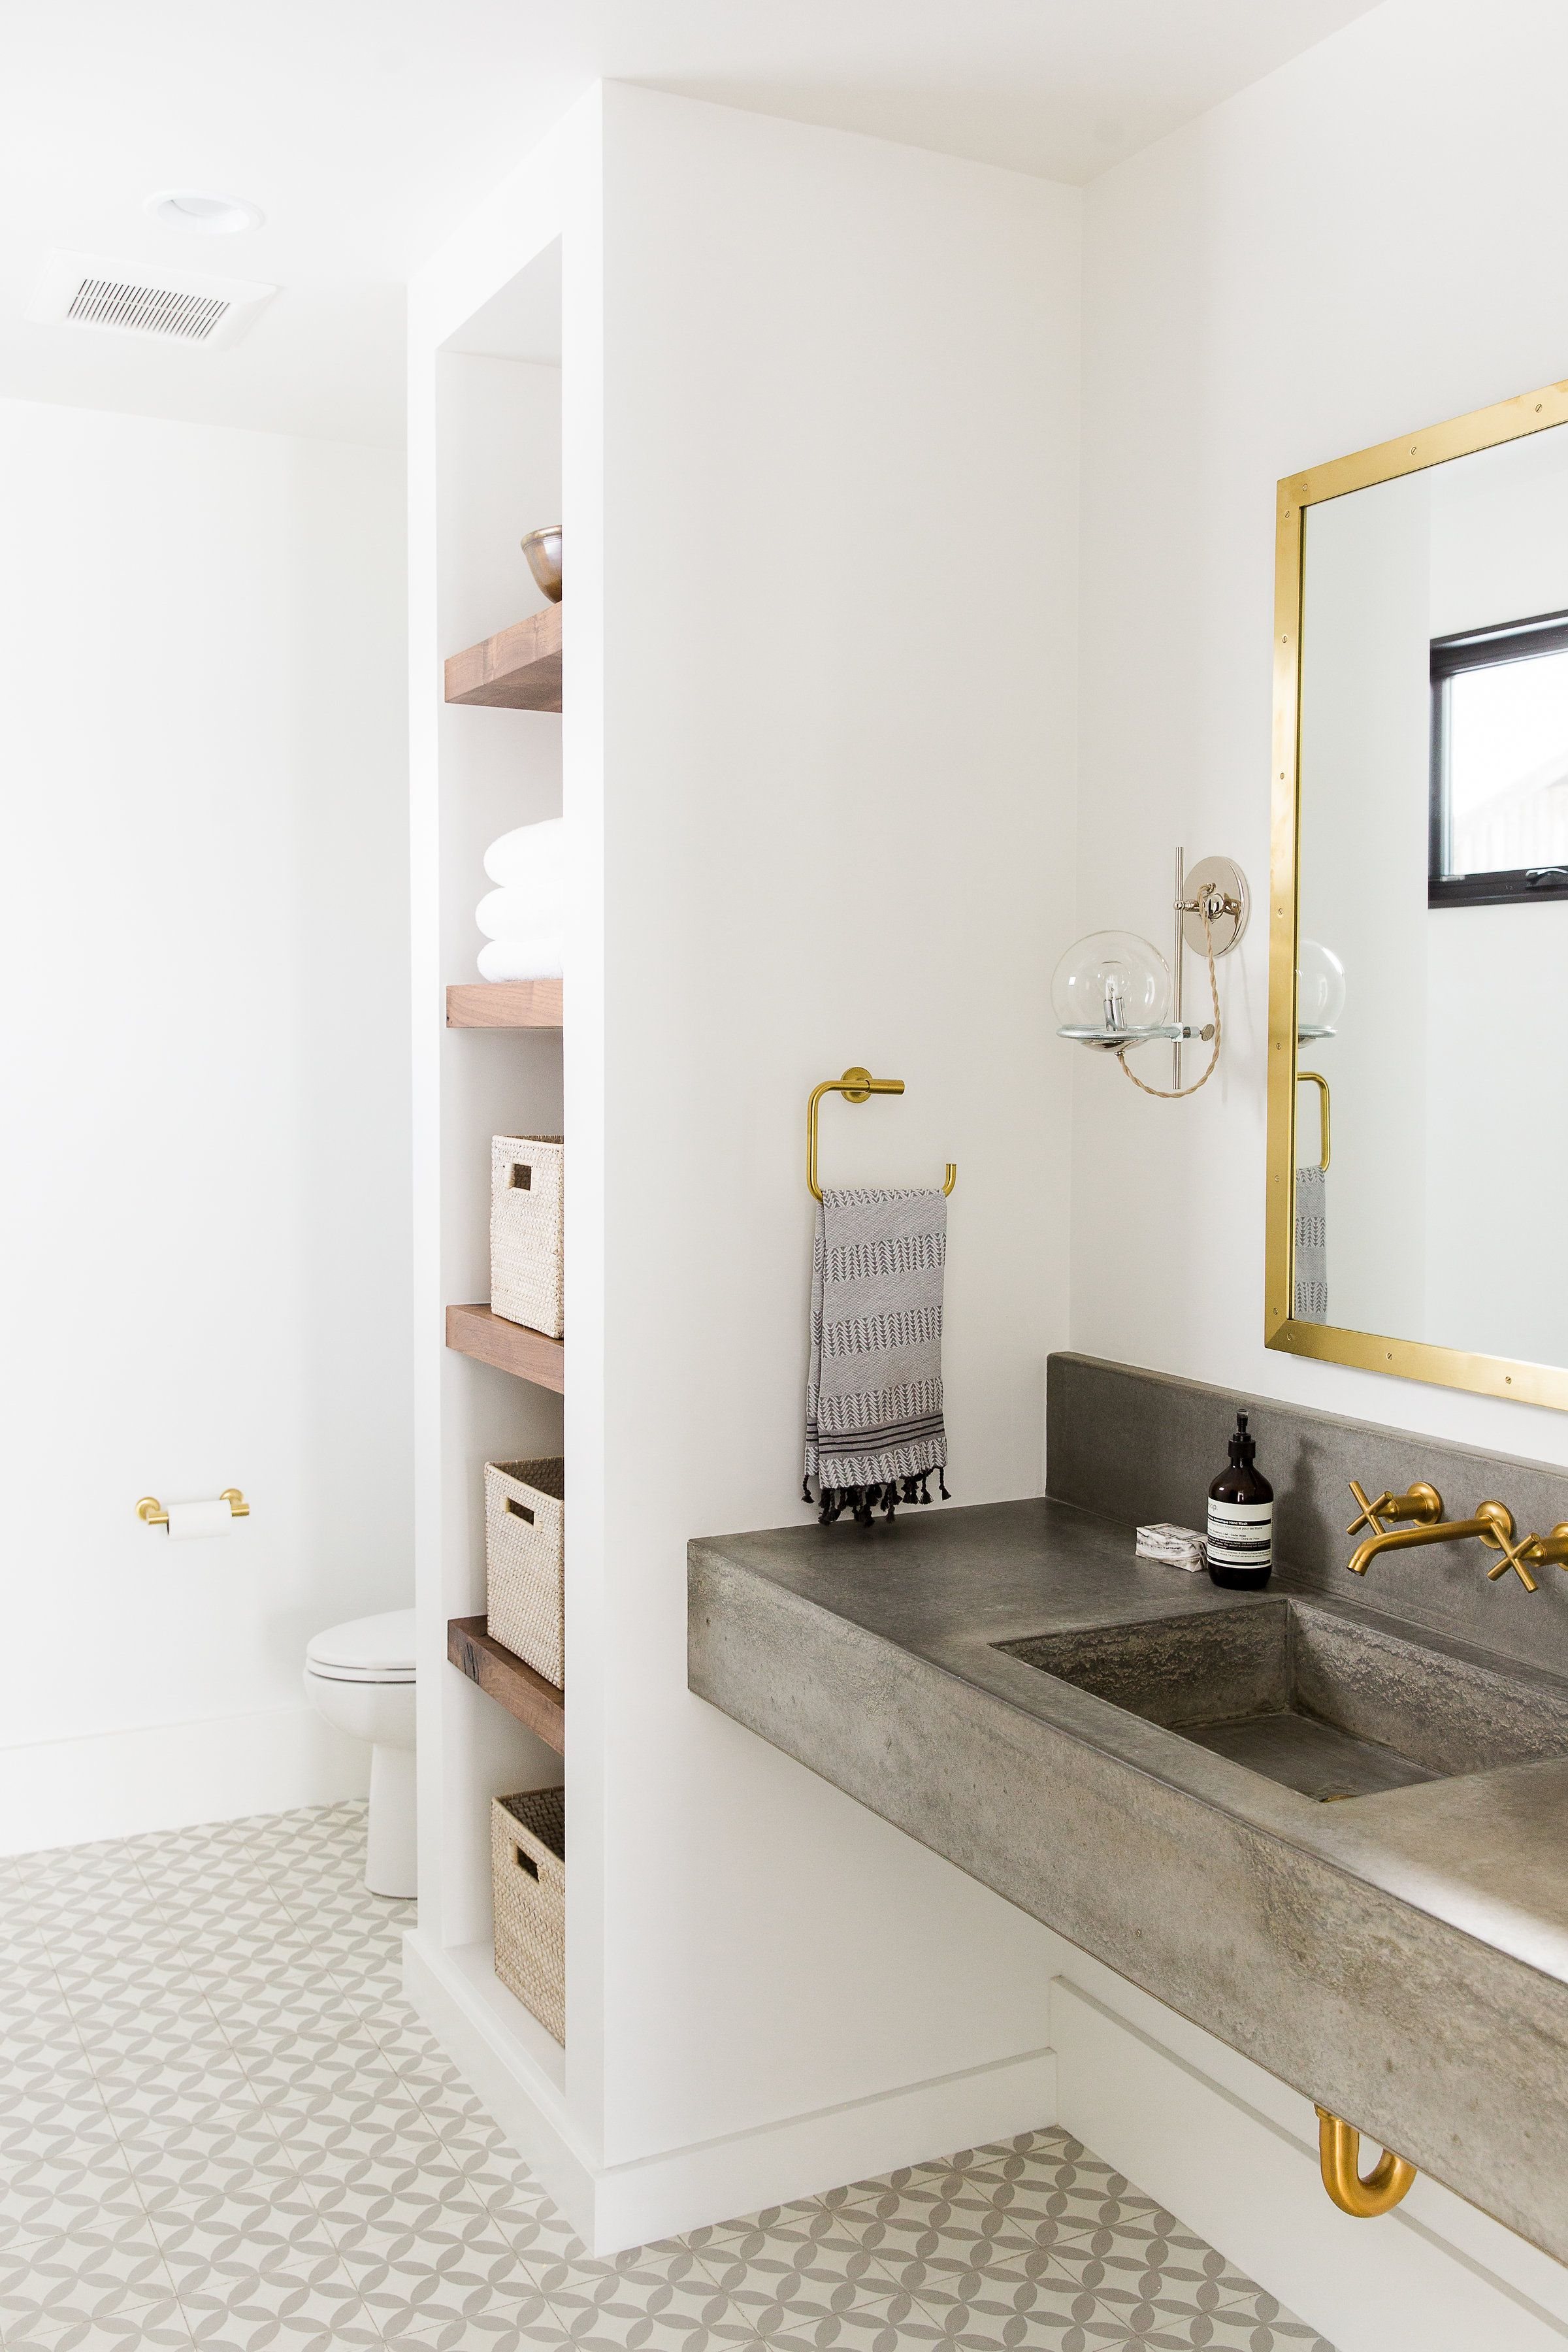 Modern Mountain Home Tour: Guest Wing in 2018 | Bathroom | Pinterest ...